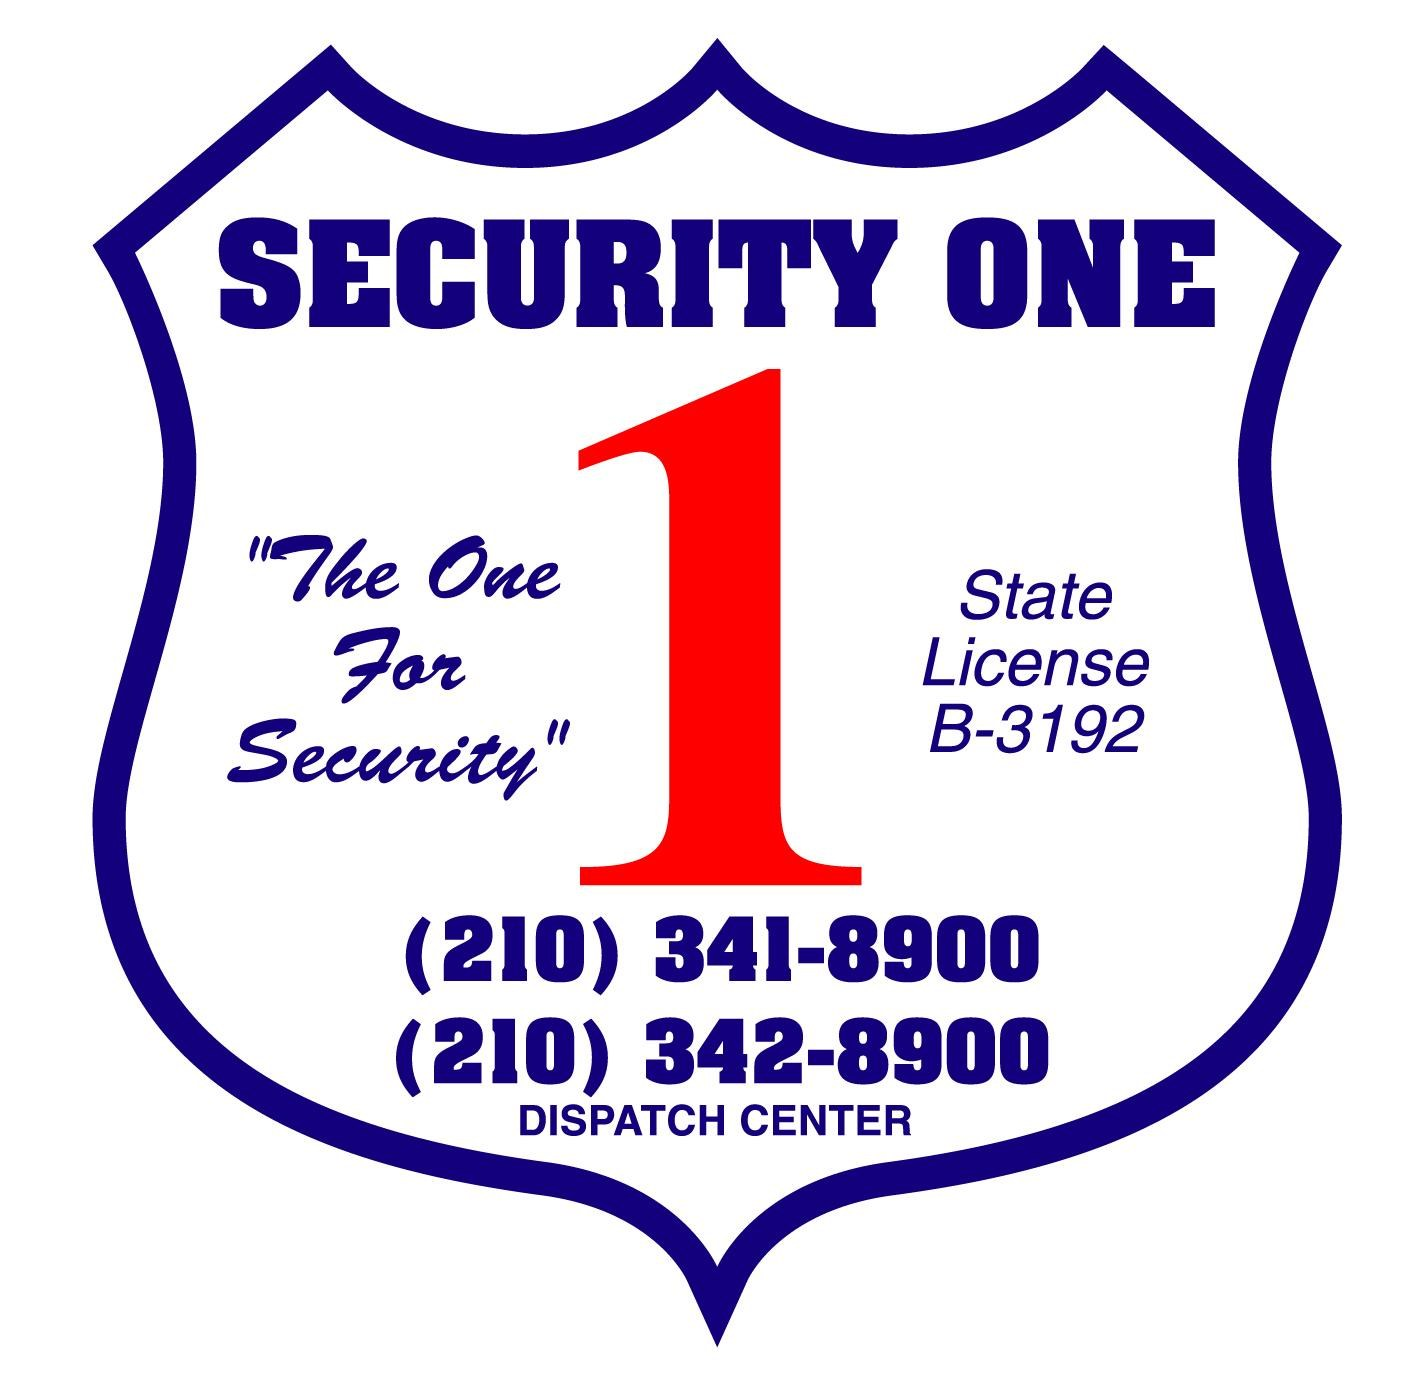 SECURITY ONE INC Reviews - Universal City, TX